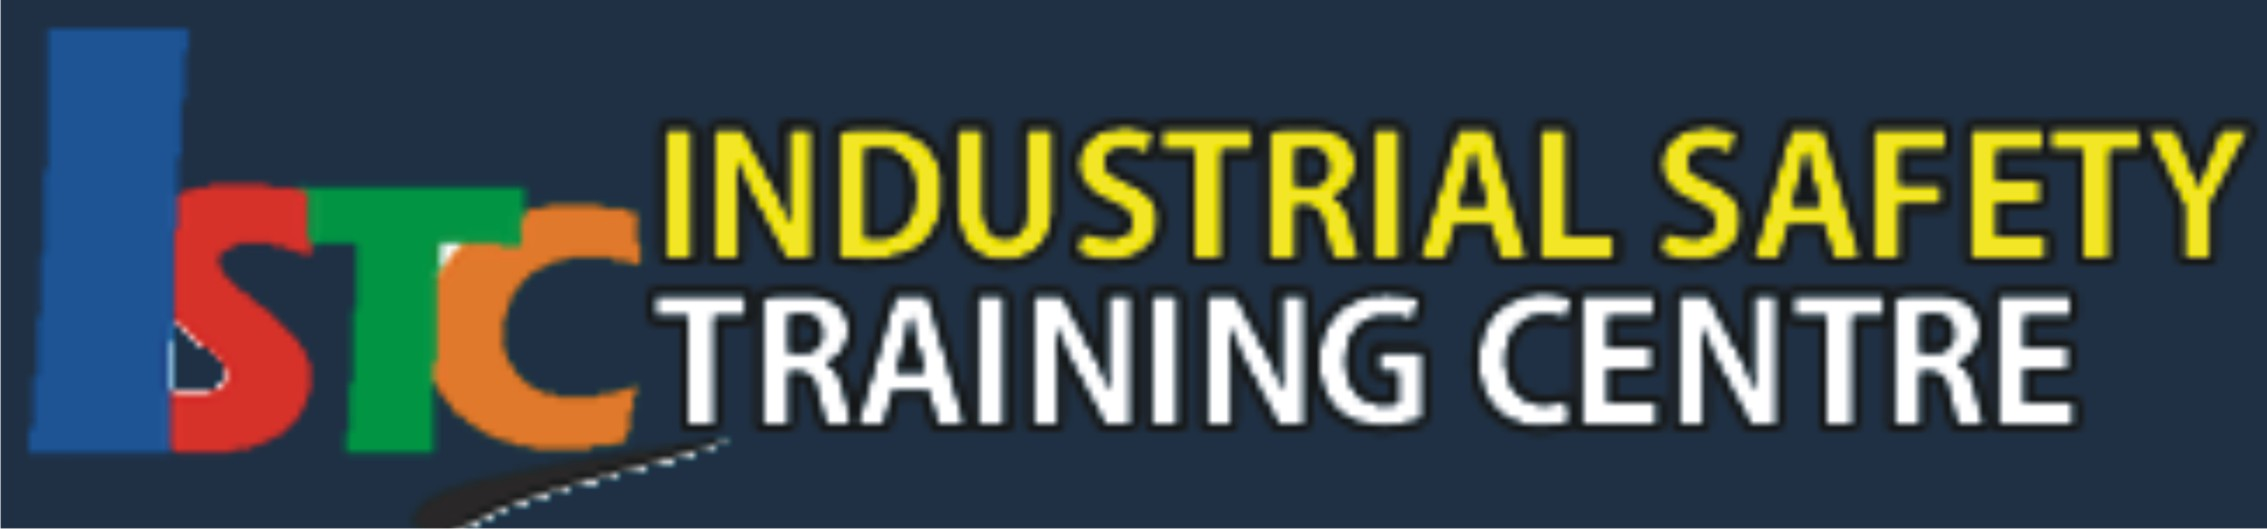 Industrial Safety Training Center [ ISTC ]